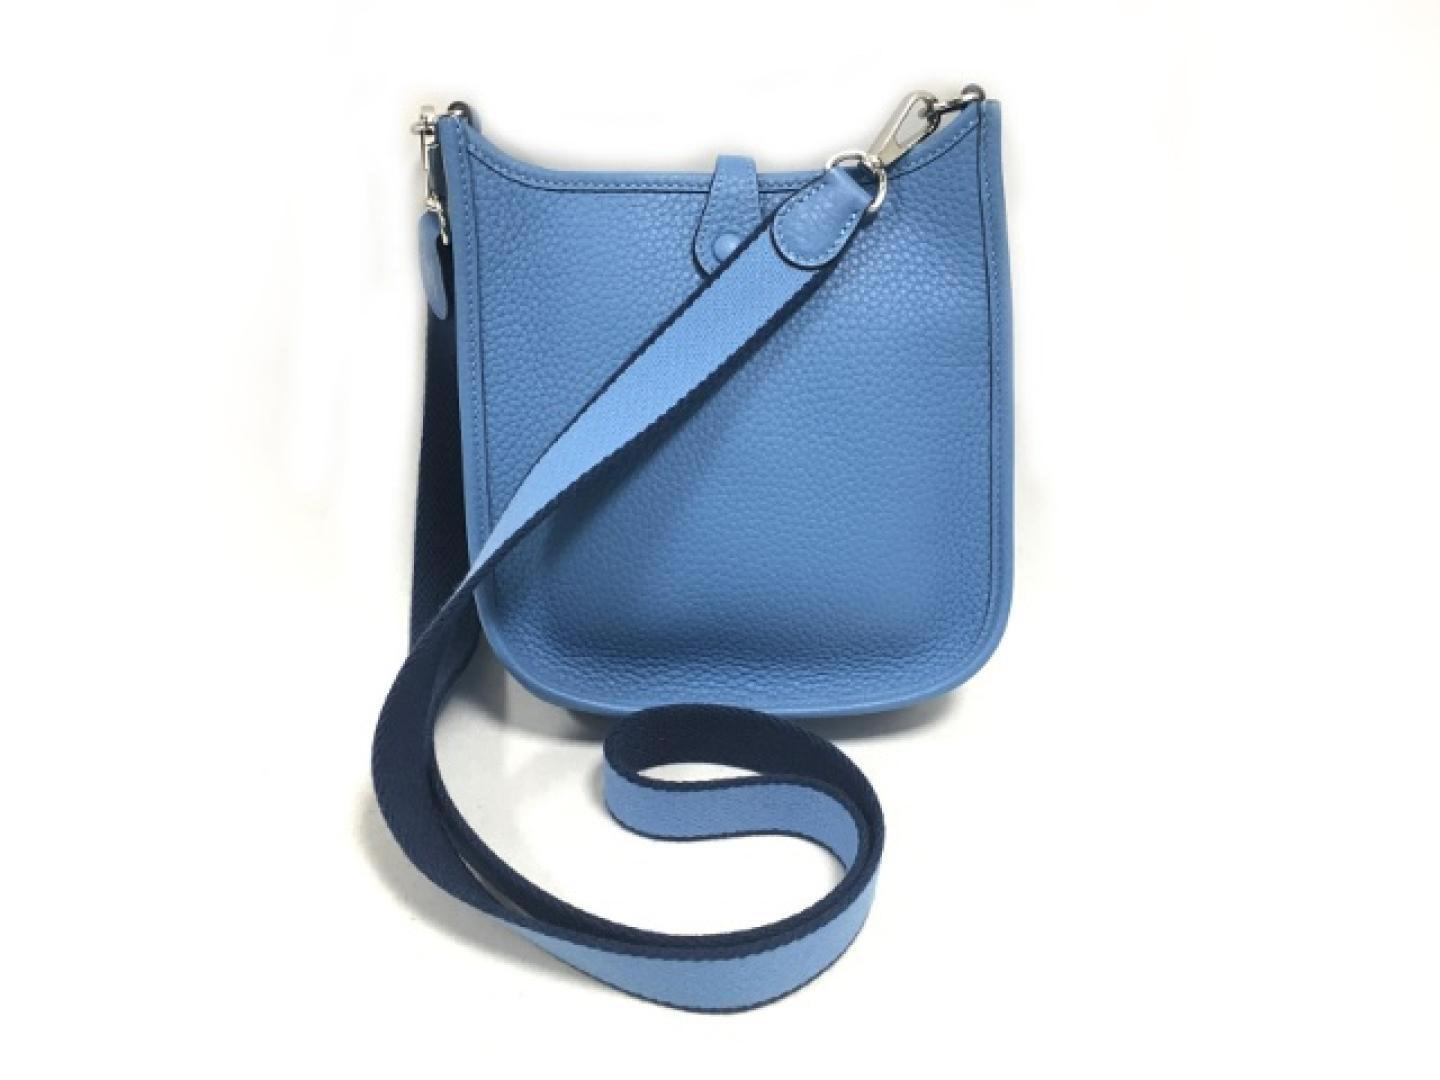 41f1574acf7d ... usa lyst hermès evelyn tpm shoulder bag clemence leather blue paradise  a1439 eb124